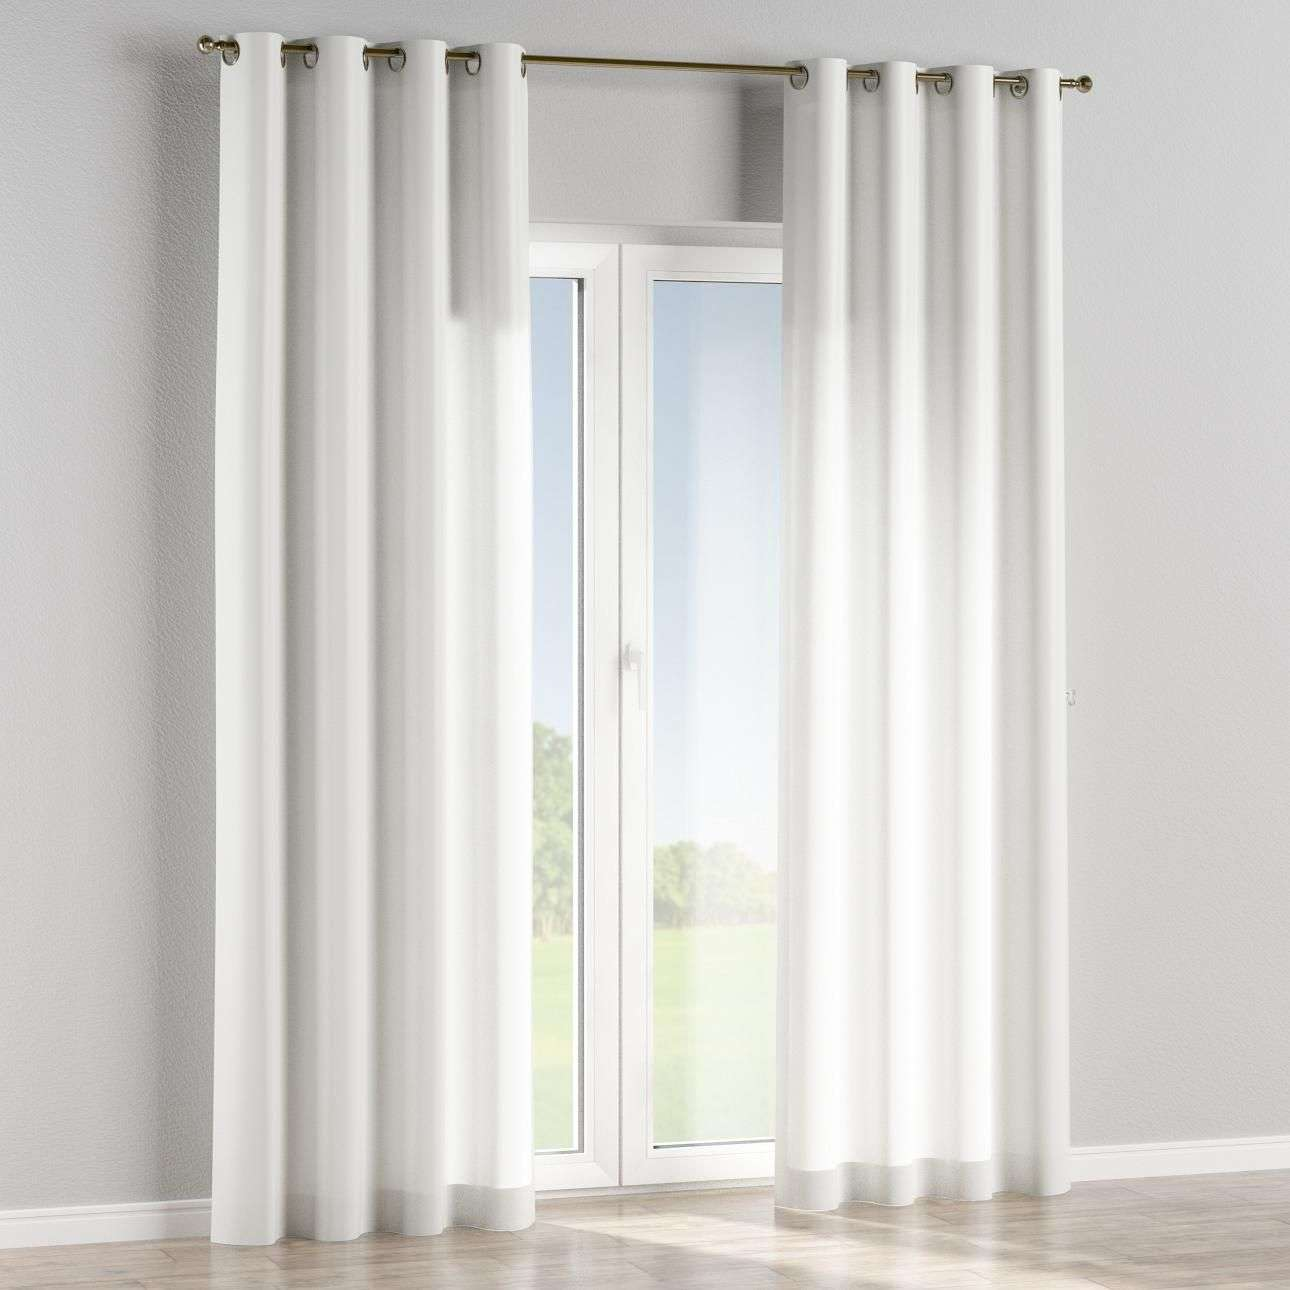 Eyelet lined curtains in collection Cardiff, fabric: 136-32